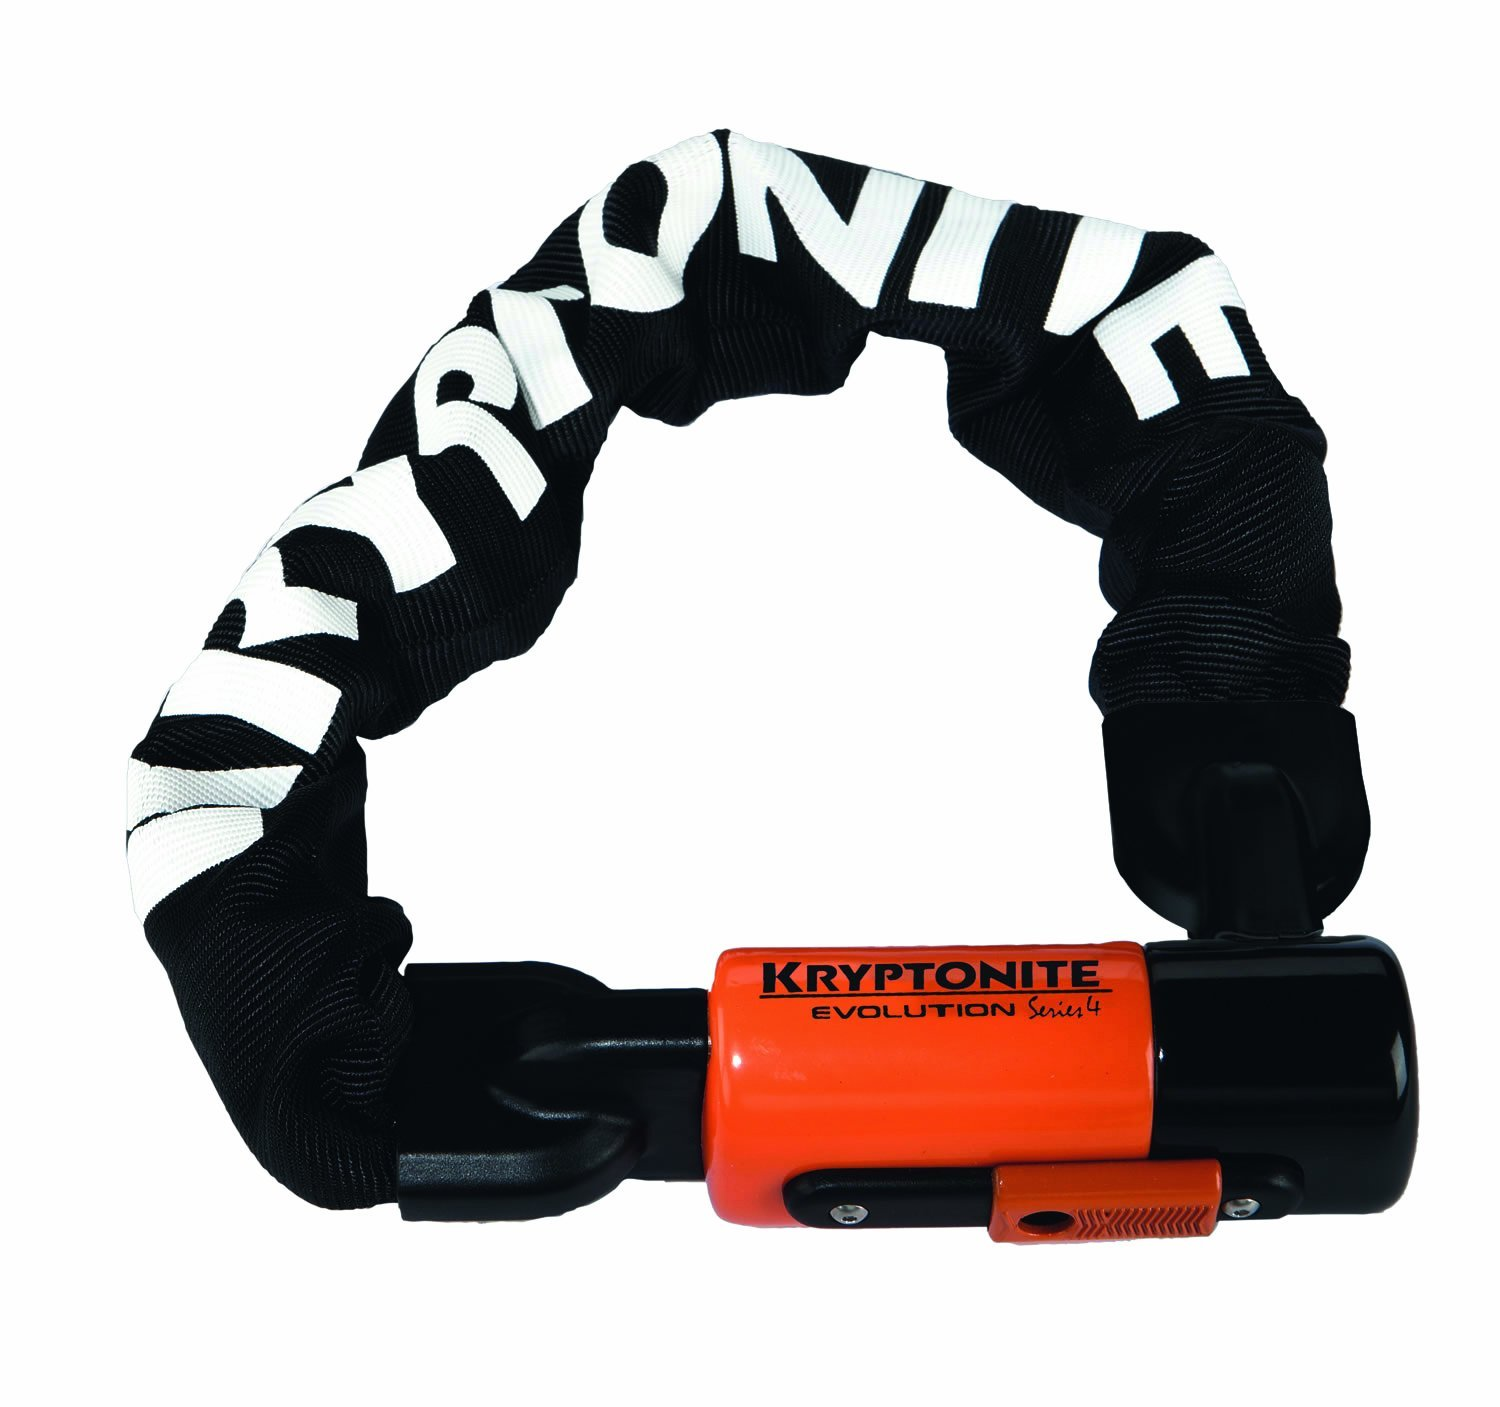 Kryptonite Evolution 4 Integrated Chain Bicycle Lock – 3 Stainless Steel Keys, Multiple Sizes Available